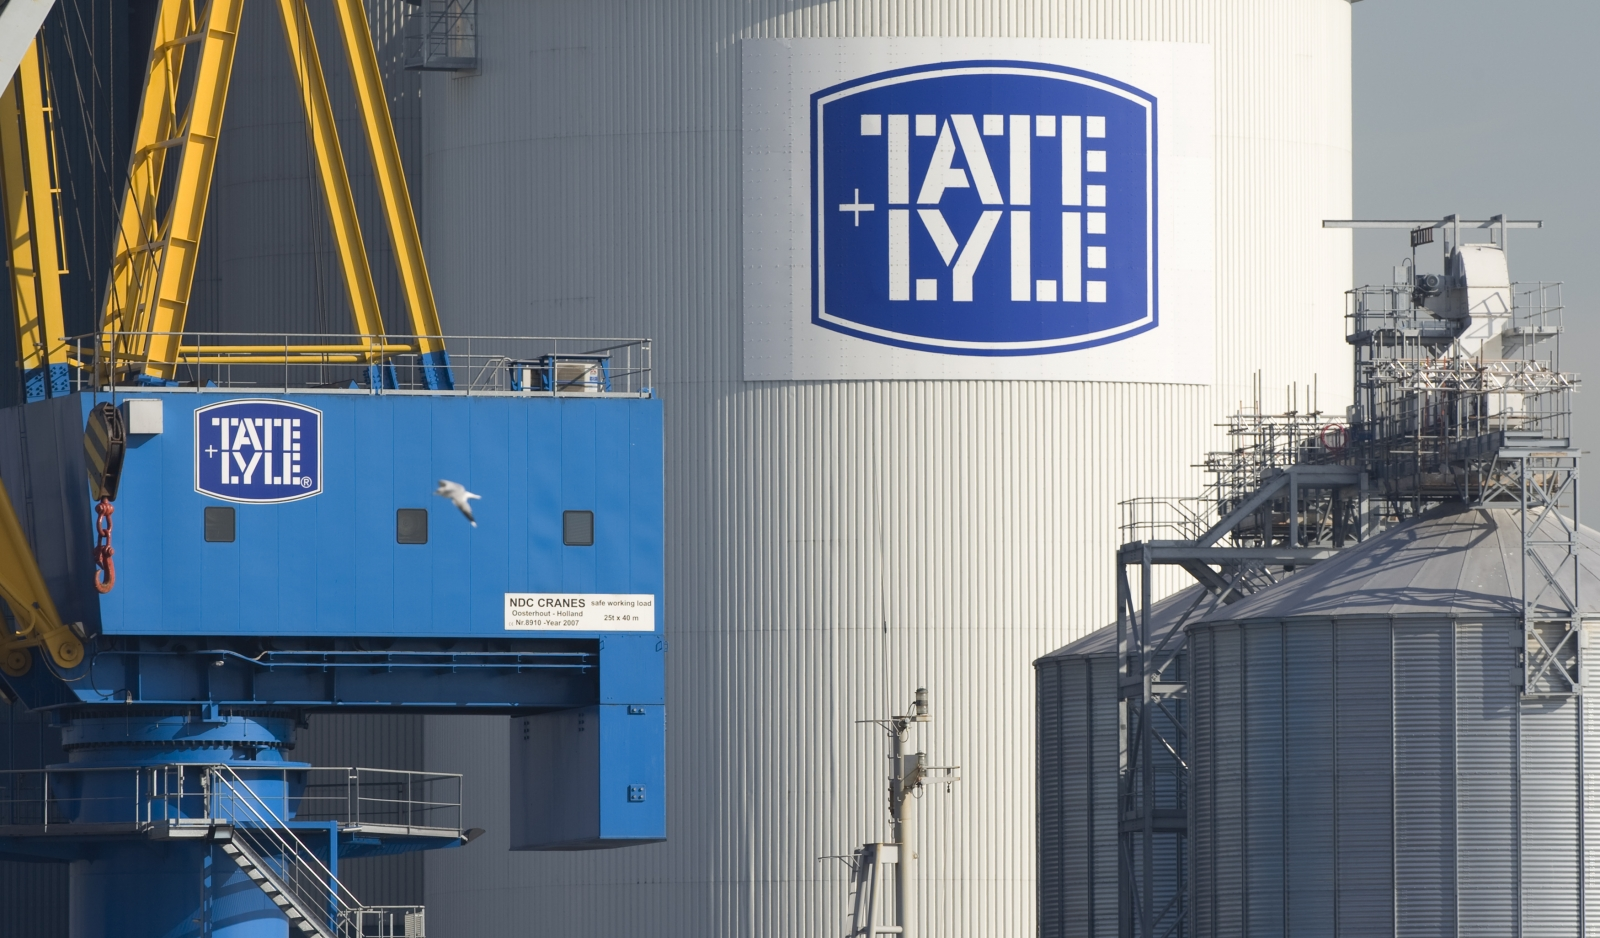 pest analysis for tate lyle Opportunities for organic and fairtrade cane sugar are increasing consumers are increasingly interested in healthy and natural products this provides particularly interesting opportunities for organic and ethically sourced products.